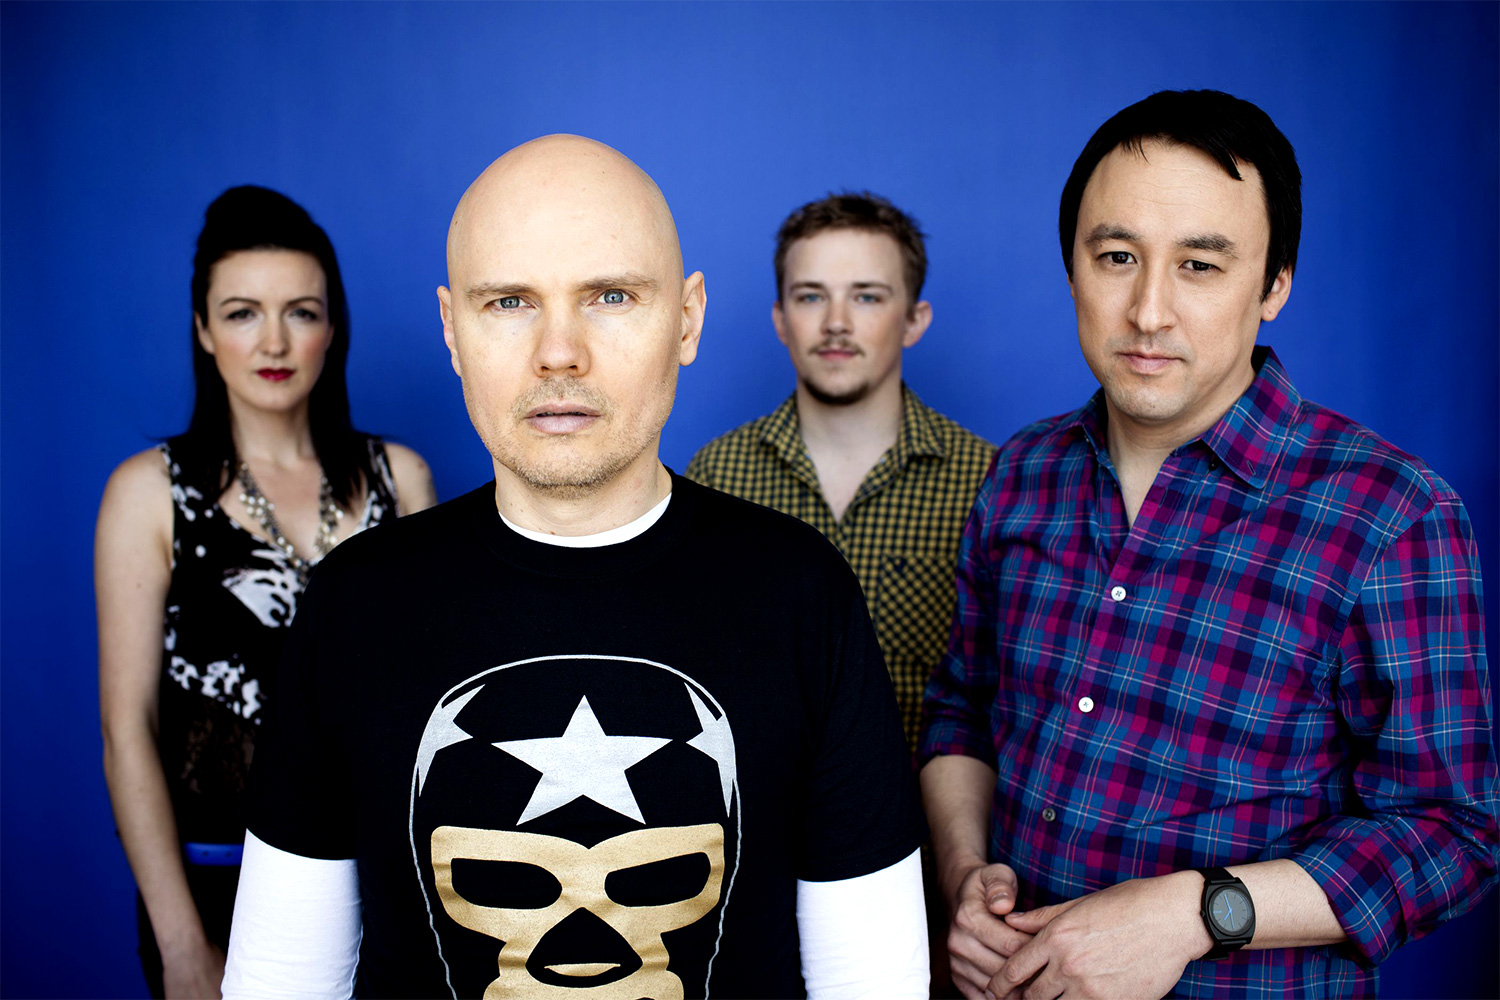 Два новых альбома The Smashing Pumpkins